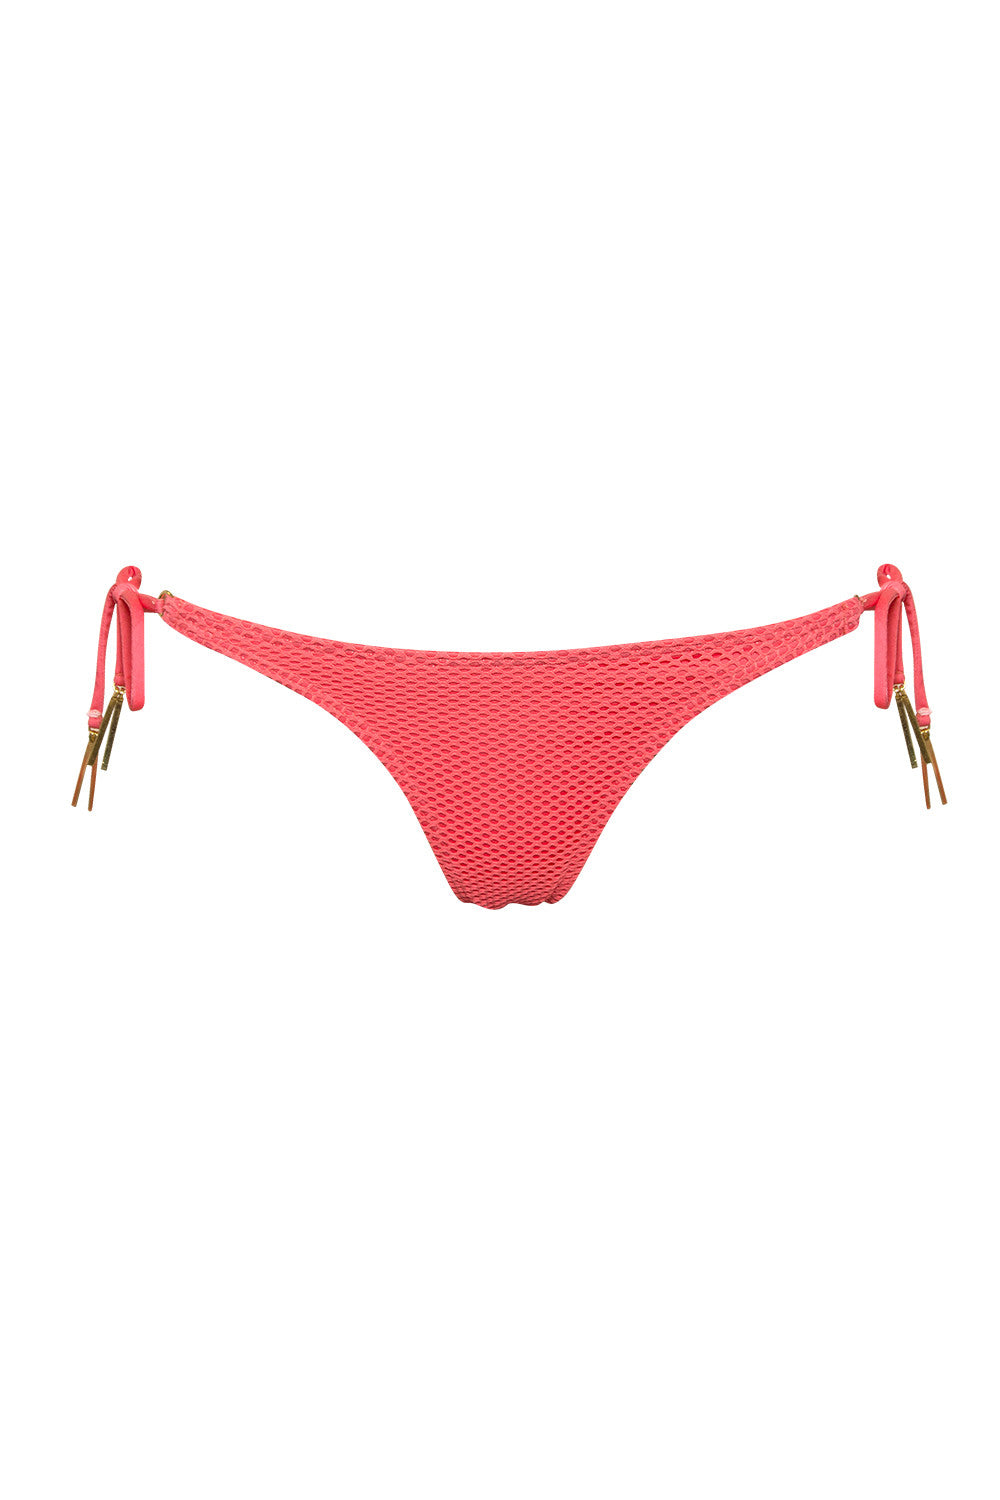 Net Jam Lace Up Bottom